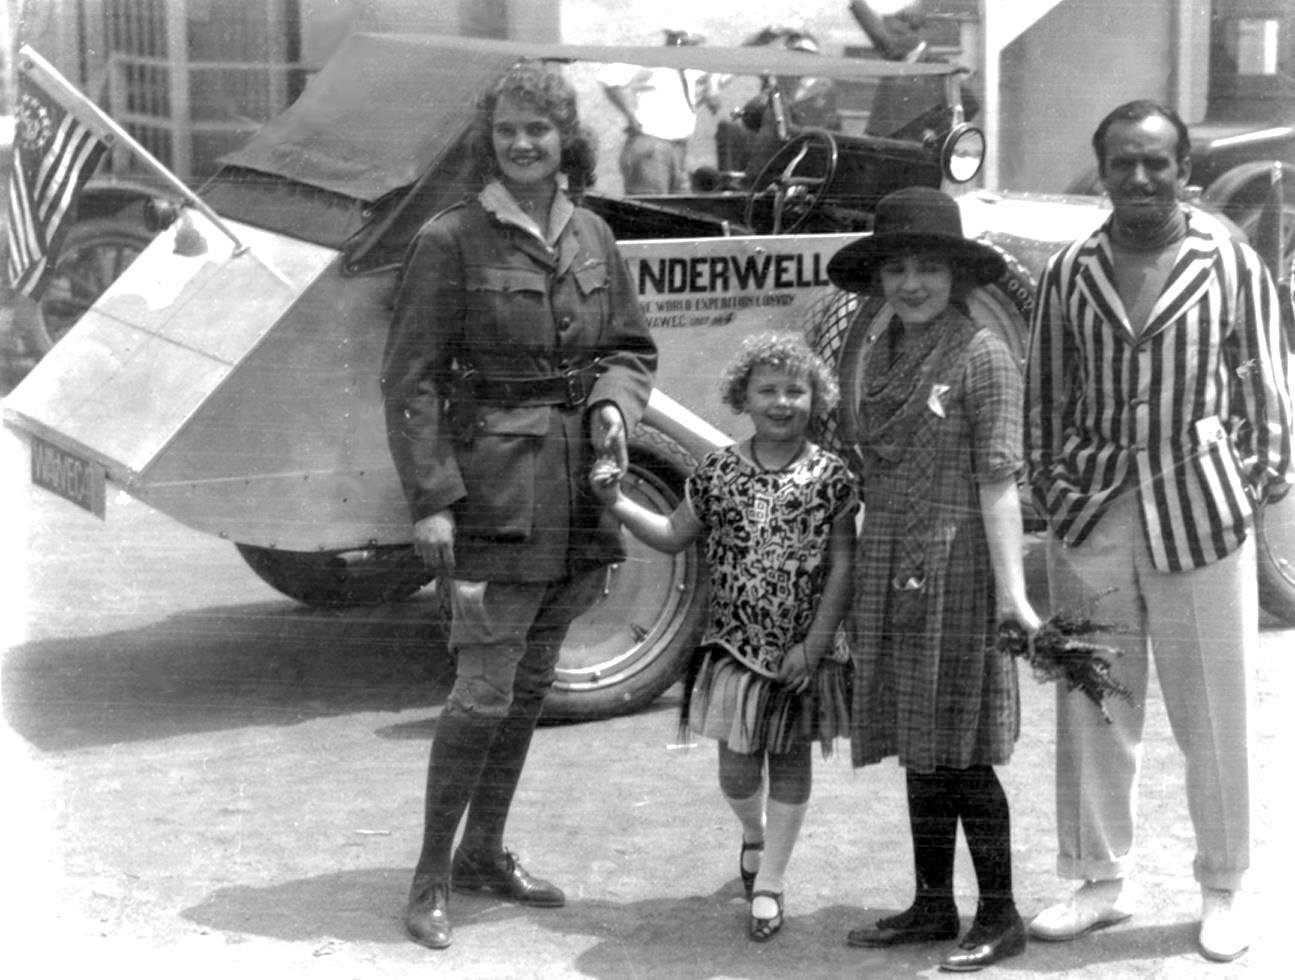 Aloha Wanderwell, Mary Pickford & Douglas Fairbanks